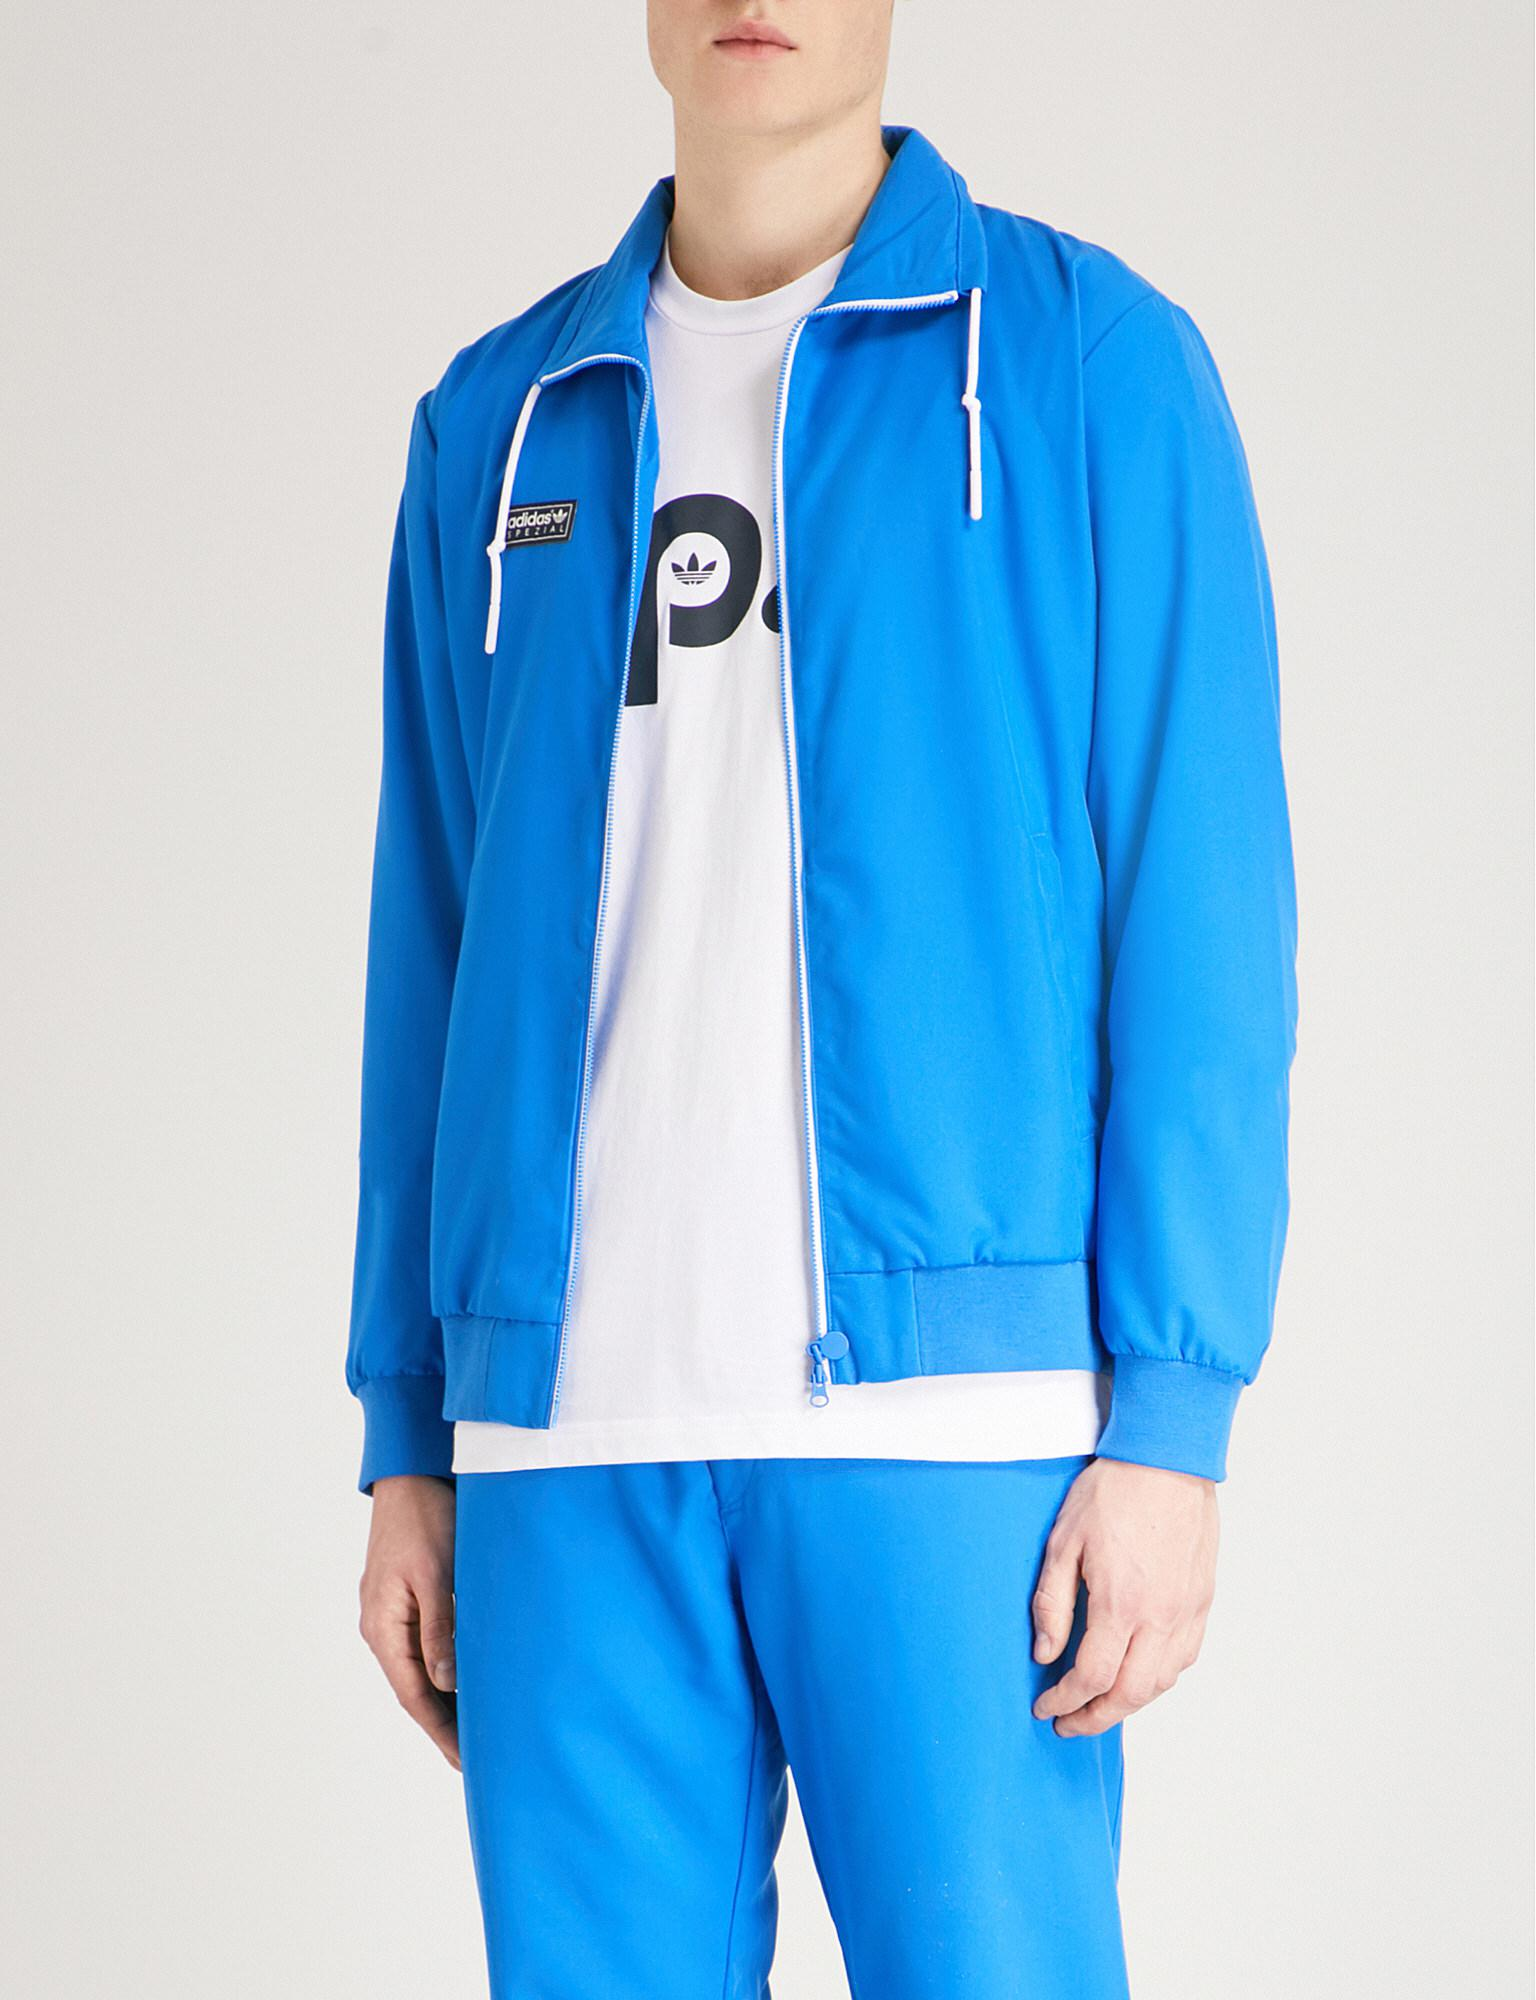 adidas Cardle Jersey Track Jacket in Blue for Men - Lyst bbdc9e0d8